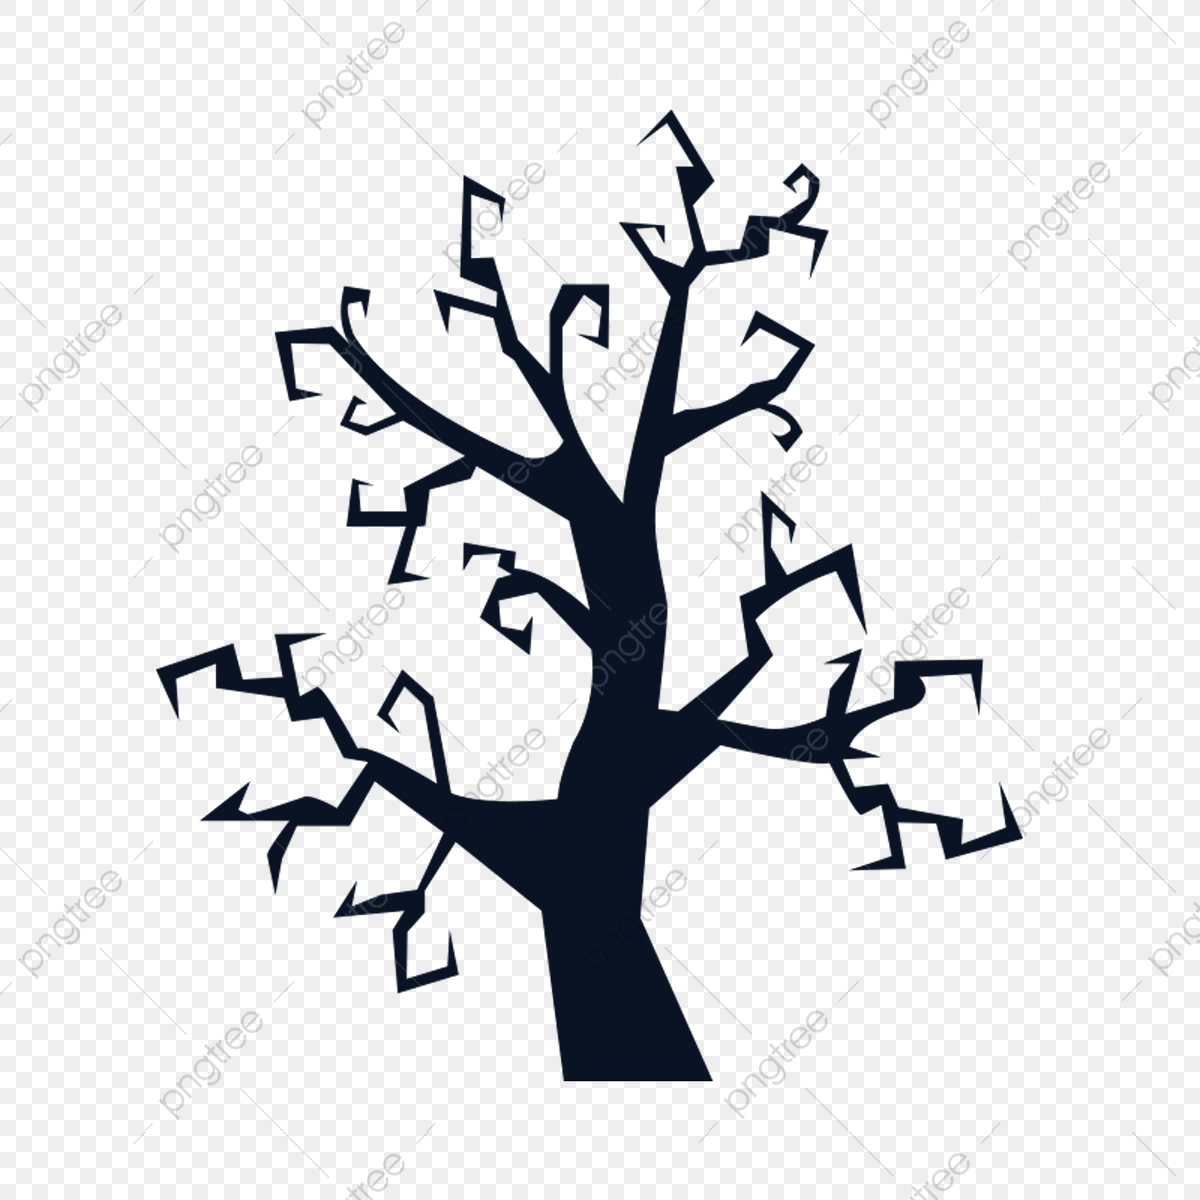 Halloween Tree Silhouette Tree Autumn Png Transparent Clipart Image And Psd File For Free Download